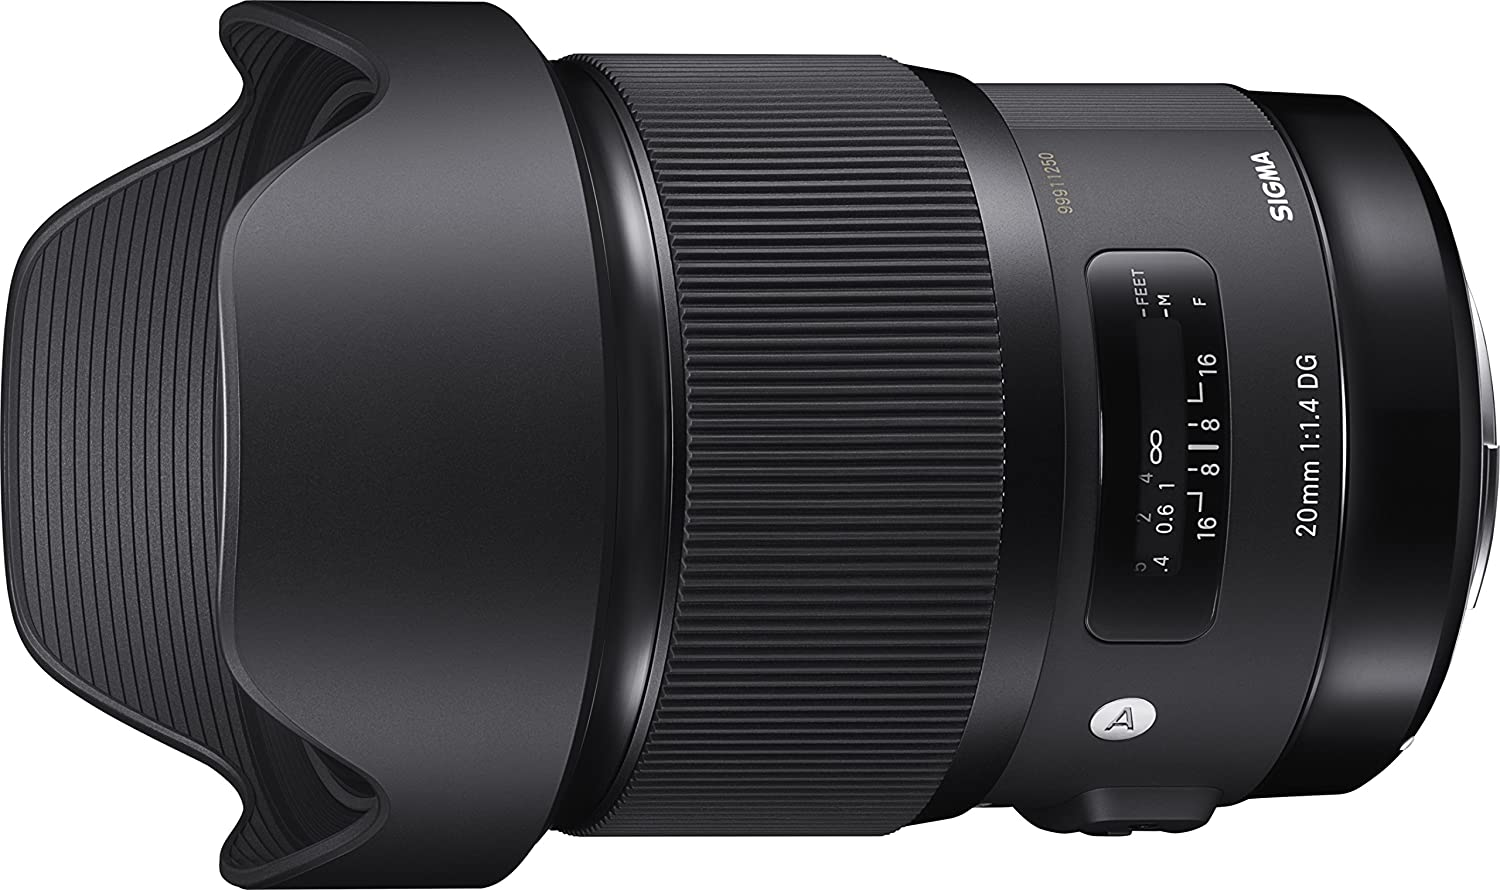 Sigma 20mm F1.4 ART DG HSM Lens Black Friday Deals 2019